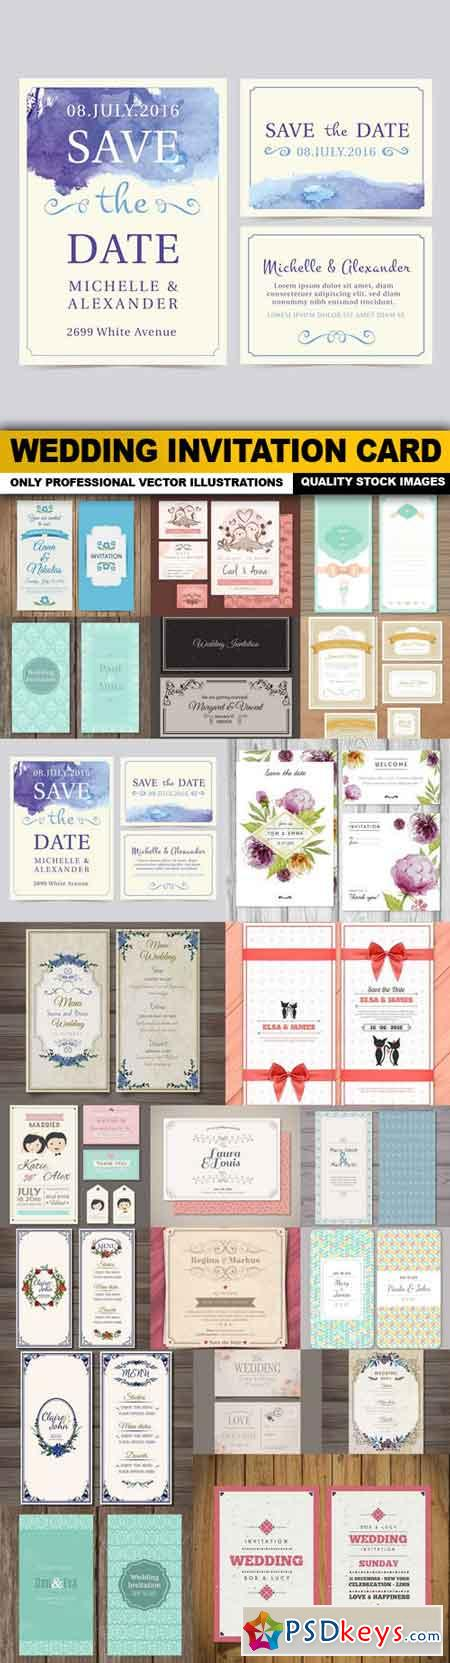 Wedding Invitation Card - 22 Vector